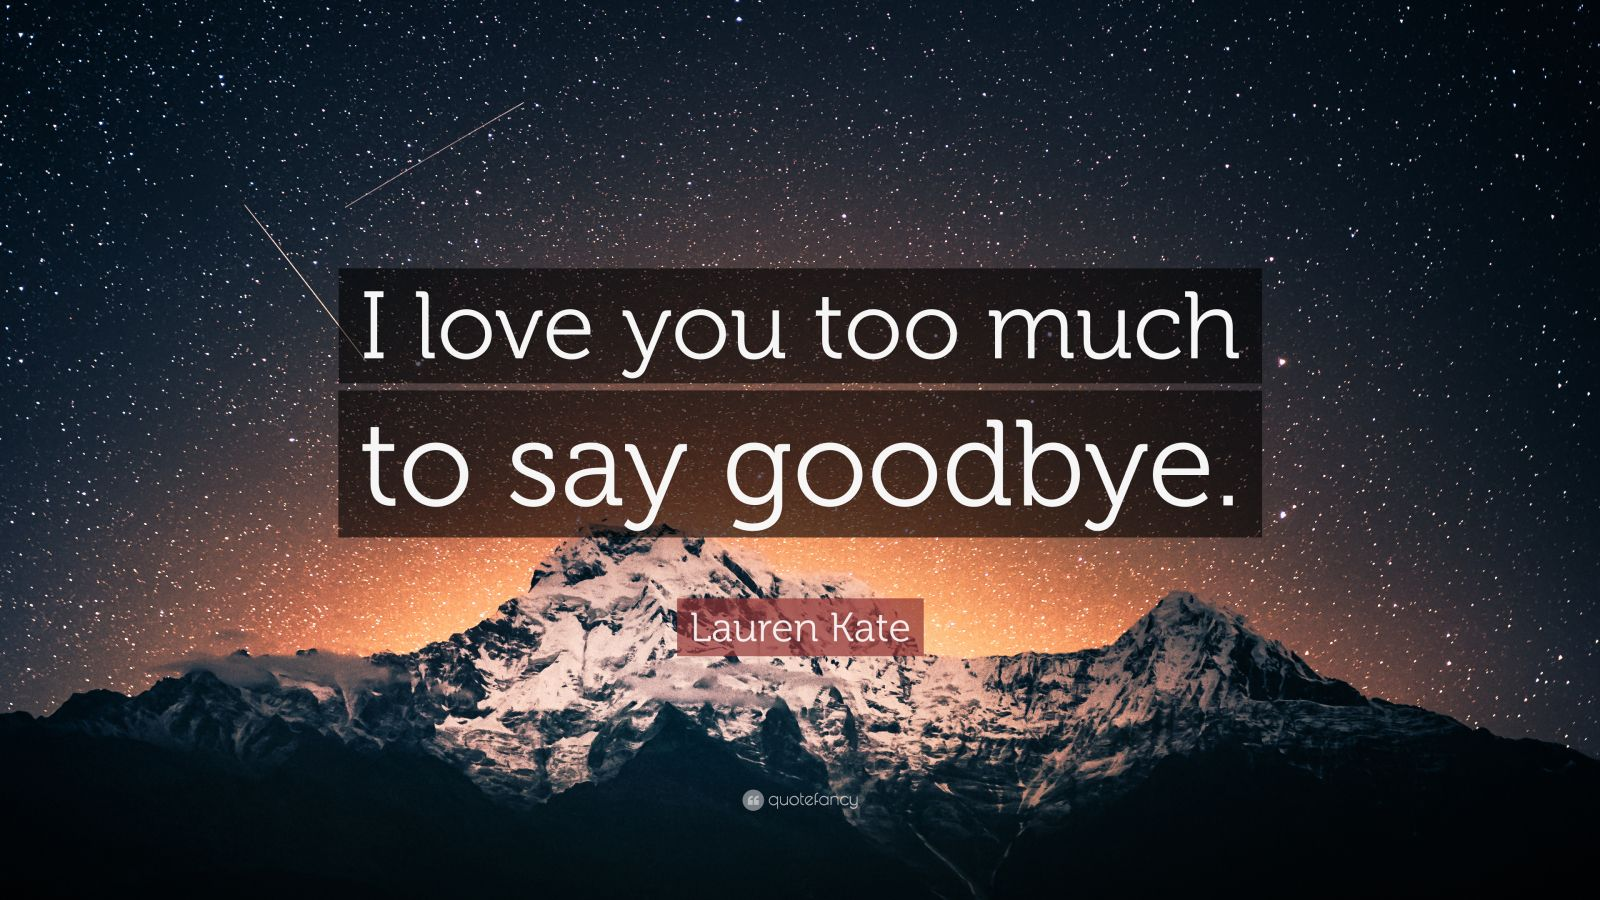 Lauren Kate Quote: ?I love you too much to say goodbye.? (9 wallpapers) - Quotefancy